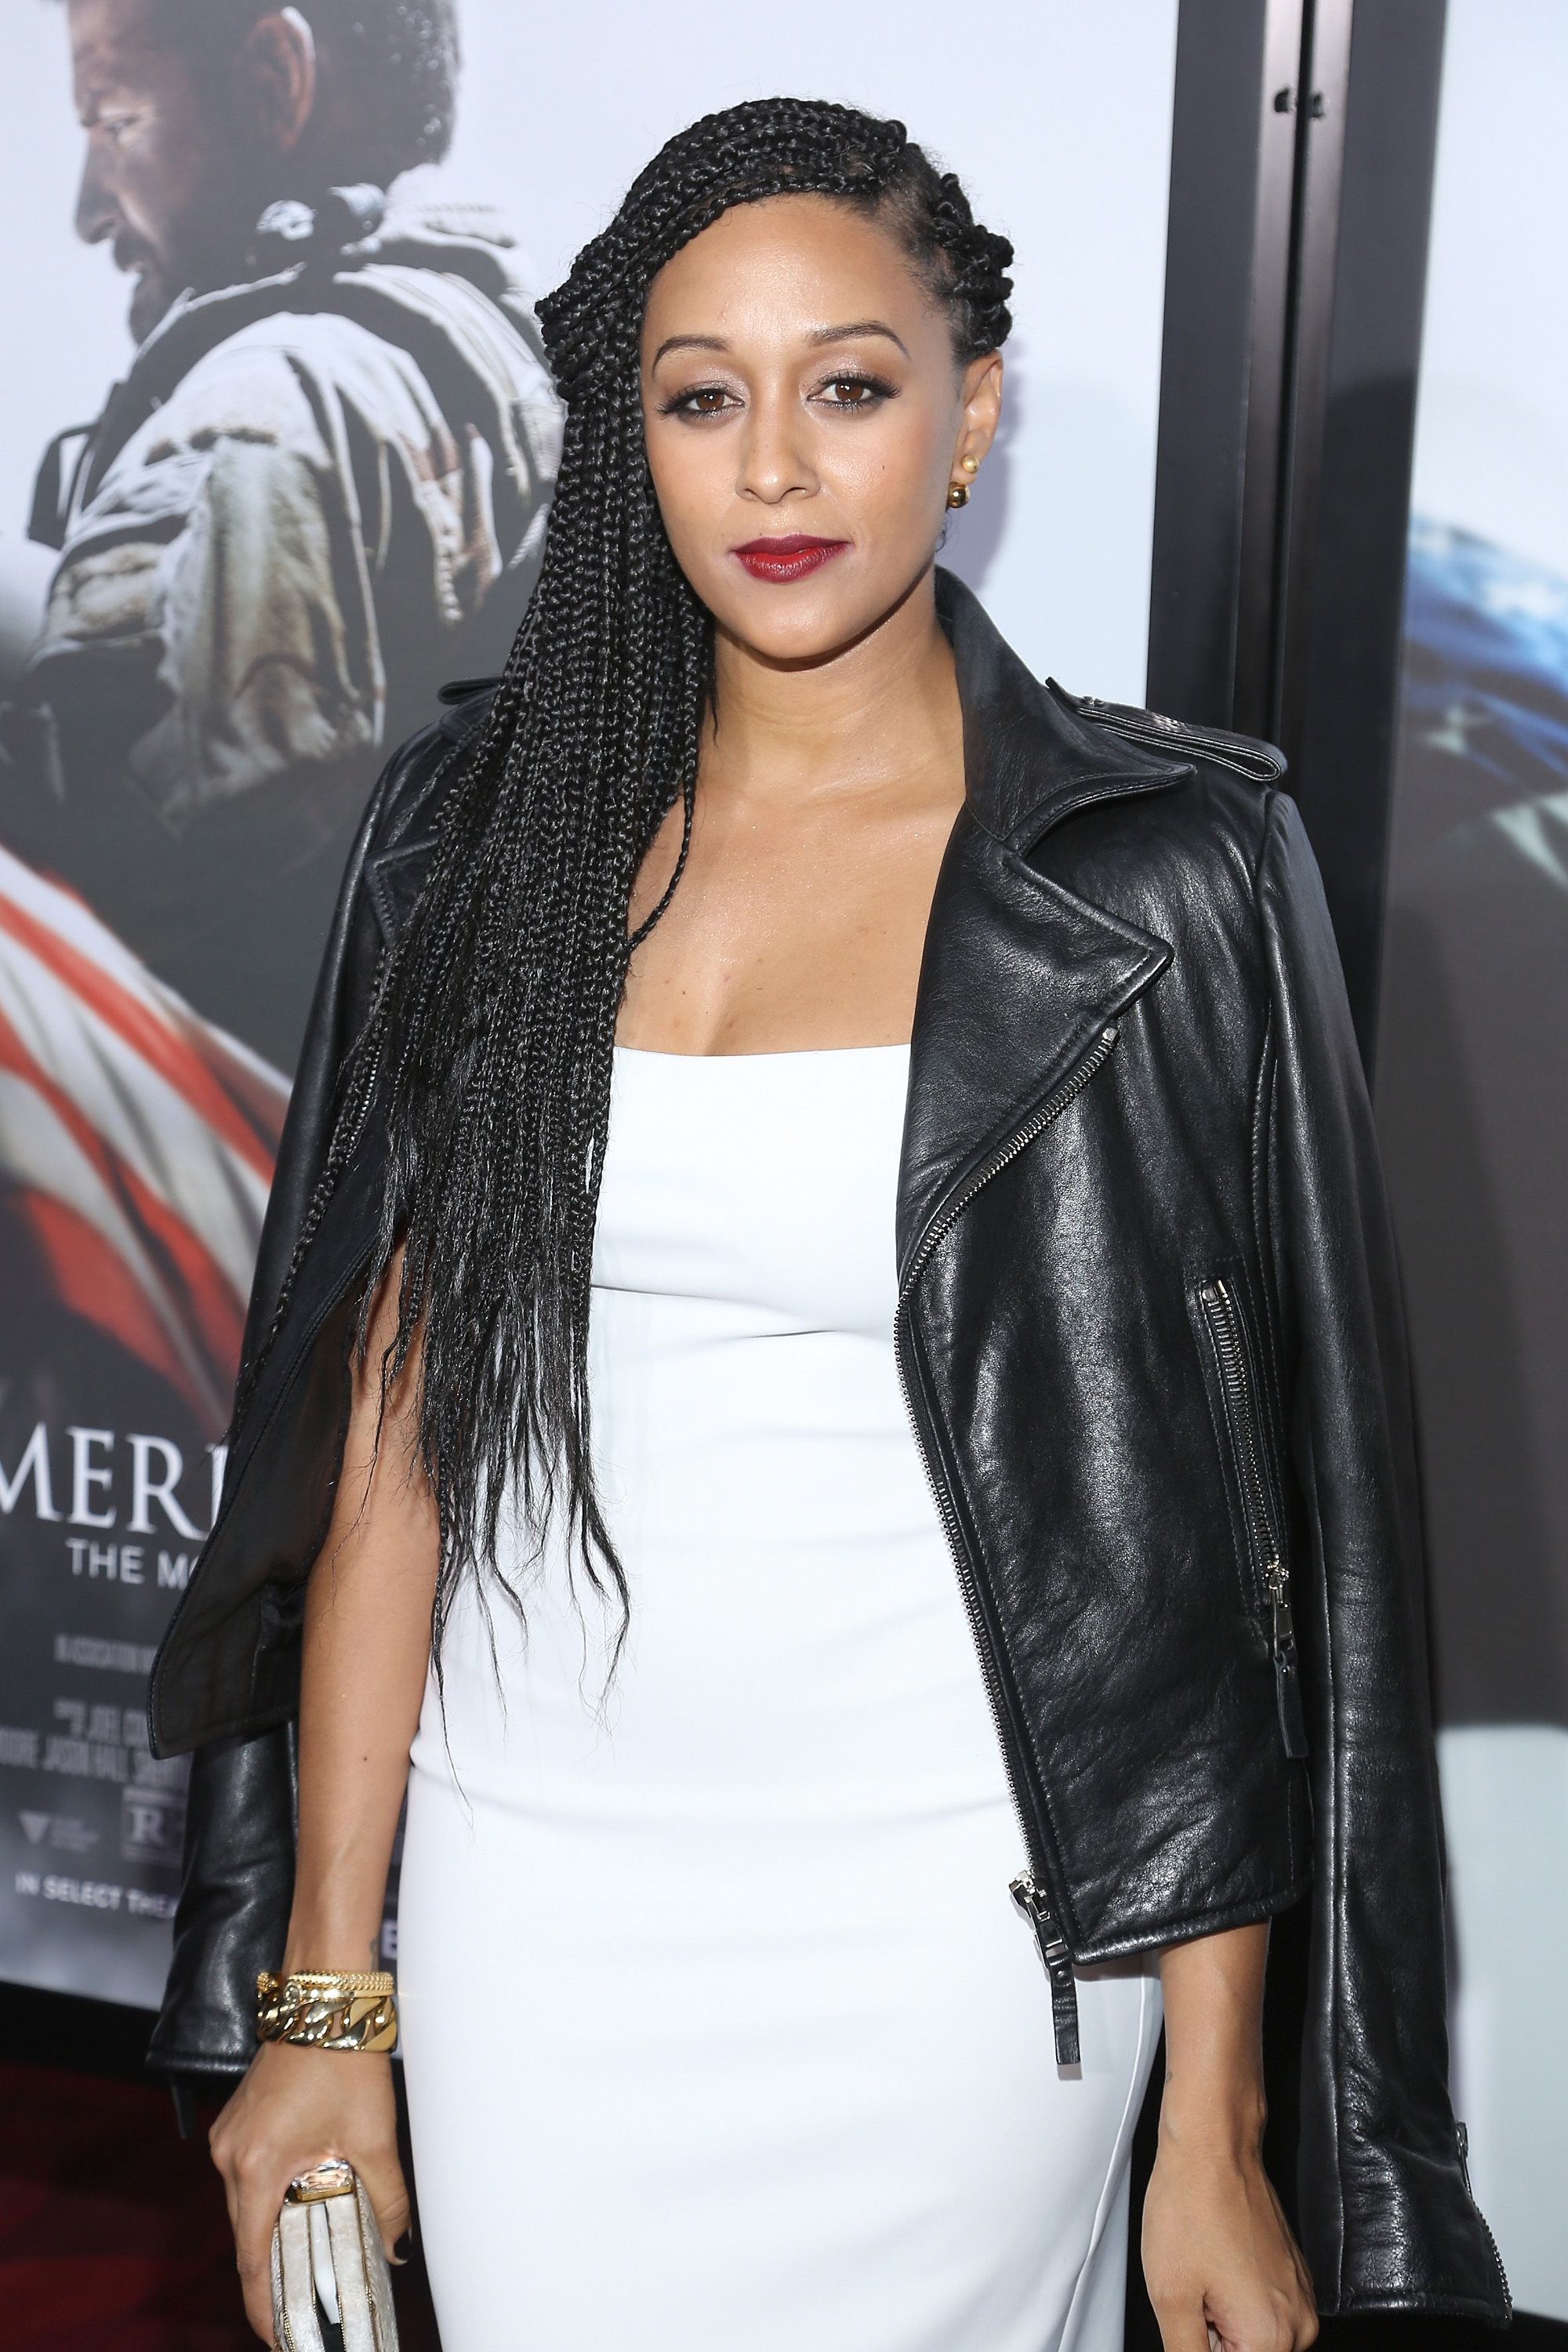 """Tia Mowry arrives at the """"American Sniper"""" New York Premiere at Frederick P. Rose Hall, Jazz at Lincoln Center on December 15, 2014 in New York City. 